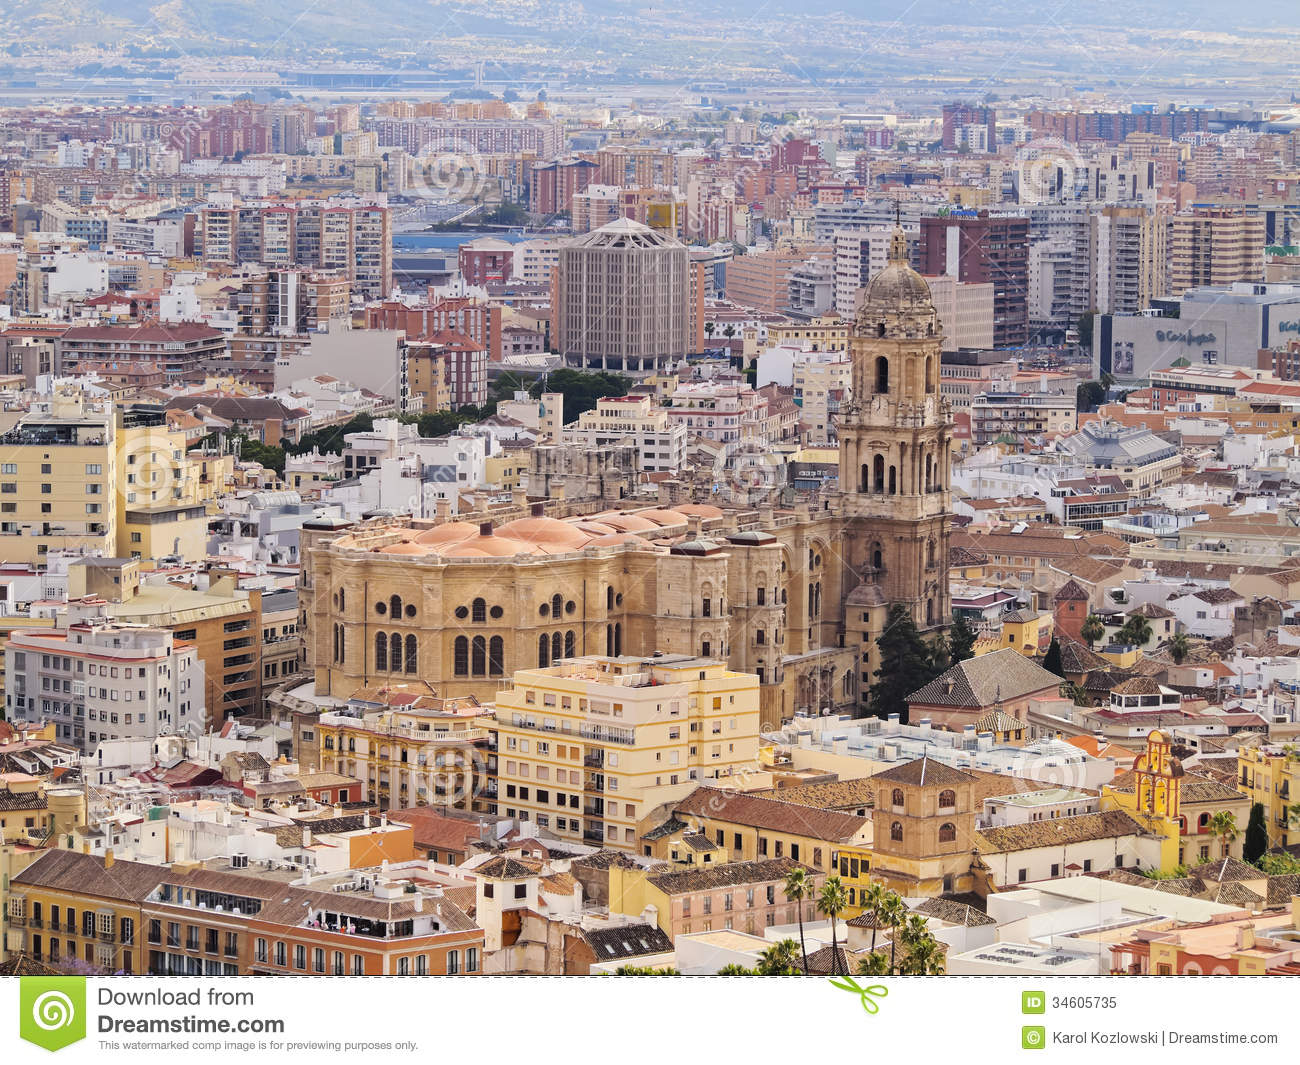 cathedral in malaga spain stock image image of mediterranean 34605735. Black Bedroom Furniture Sets. Home Design Ideas